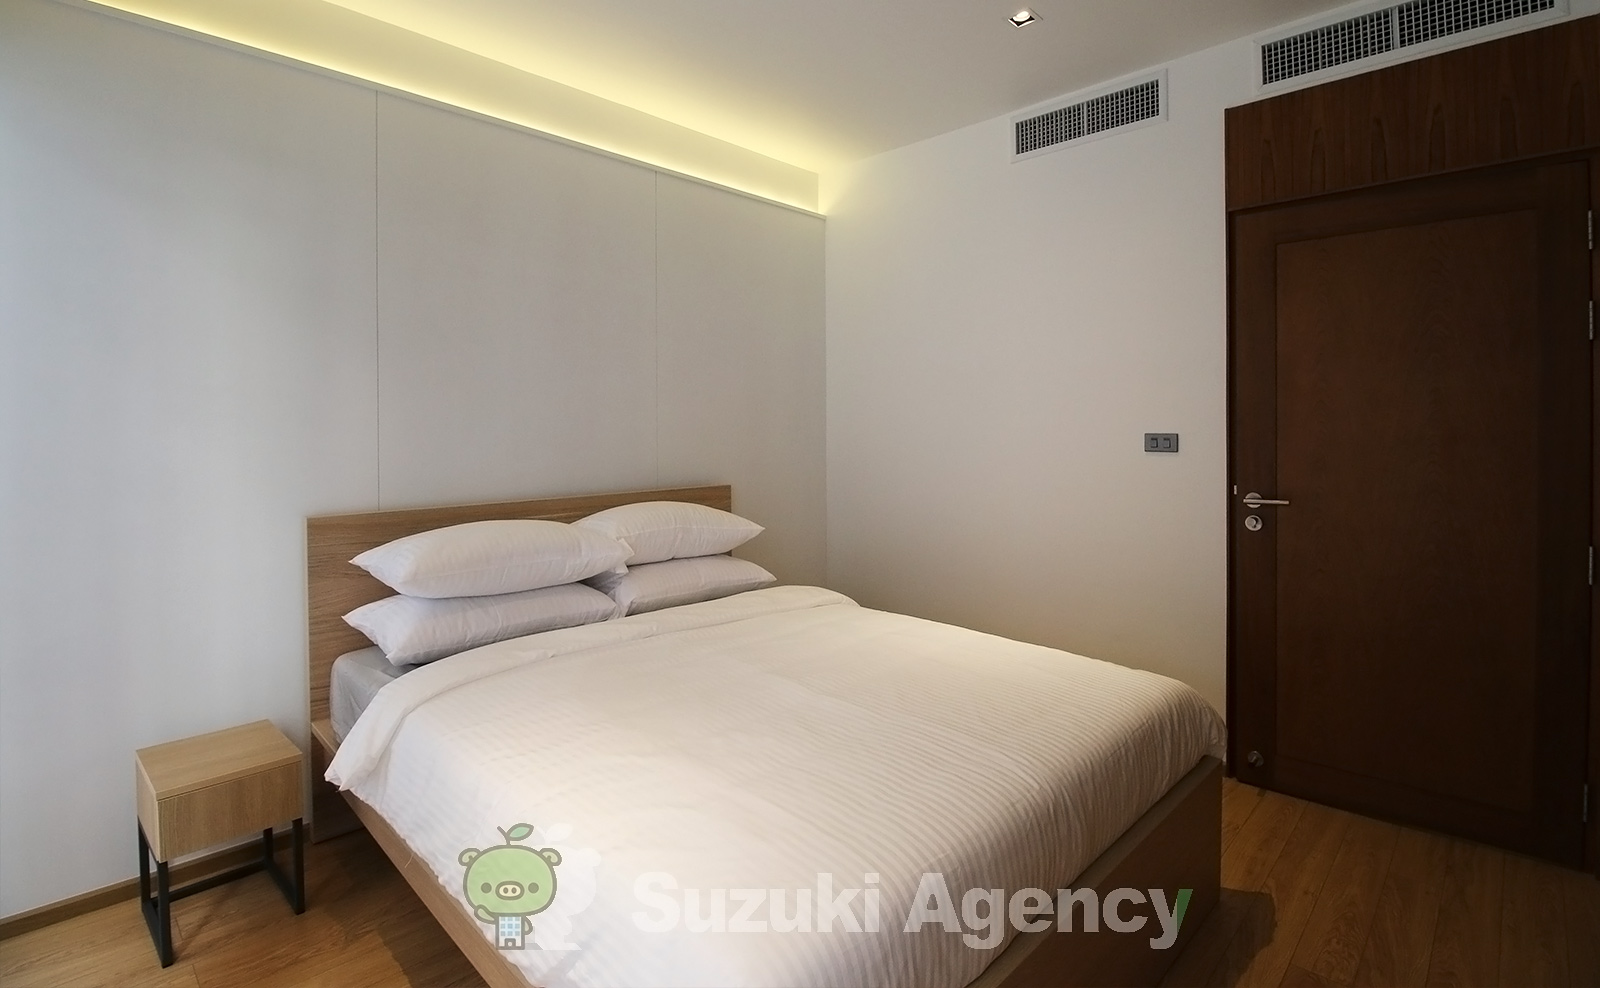 Jitimont Residence:2Bed Room Photos No.10